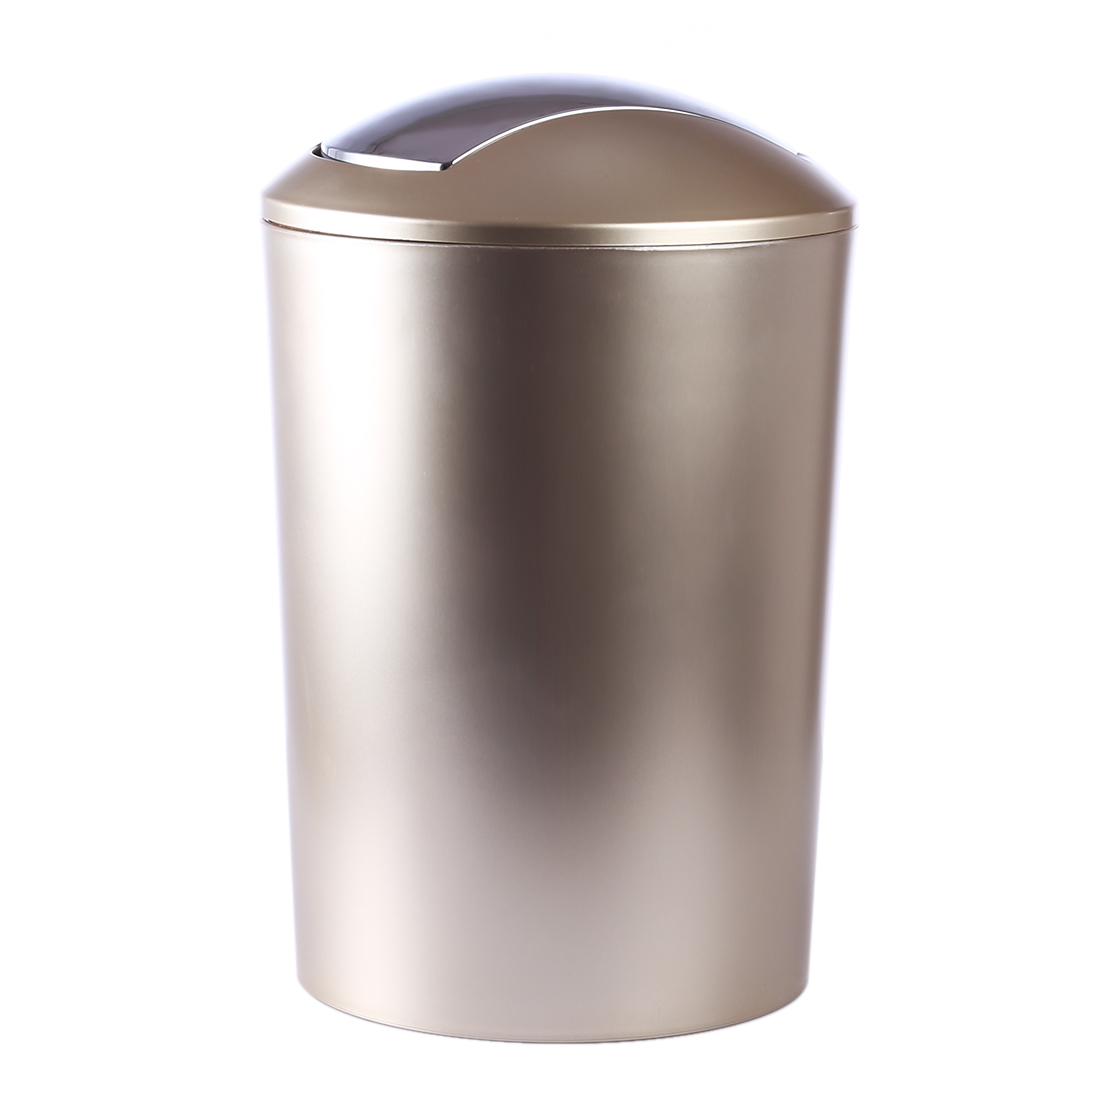 US $18.71 22% OFF|Drop Shipping 6.5L European Style Trash Garbage Can  Wastebin with Lid Home Bedroom Kitchen Garbage Bins Silver-in Waste Bins  from ...